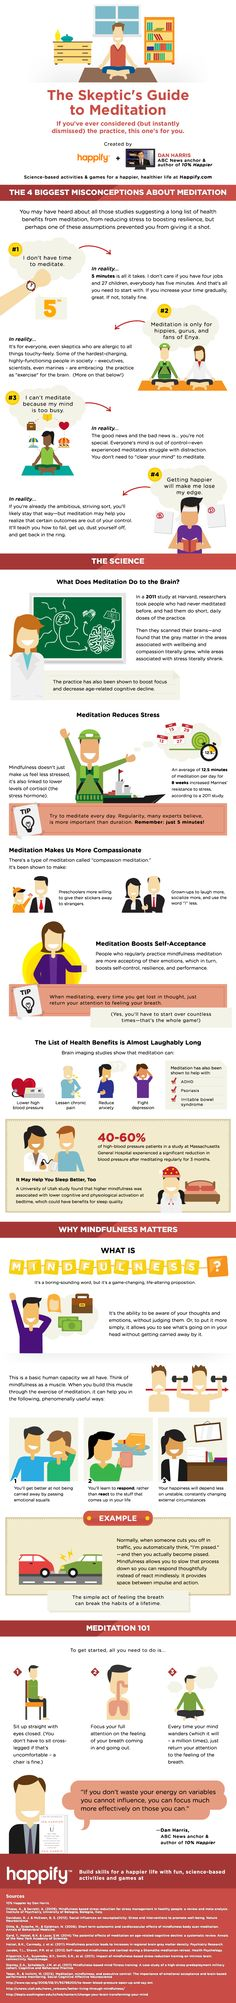 "Are You Skeptical About Meditation? Here's Everything You Need To Know! - 5 minutes is all it takes. Meditation reduces stress, makes us more compassionate and boosts self-acceptance... "" - Created by Happify and Dan Harris, author of 10% Happier"